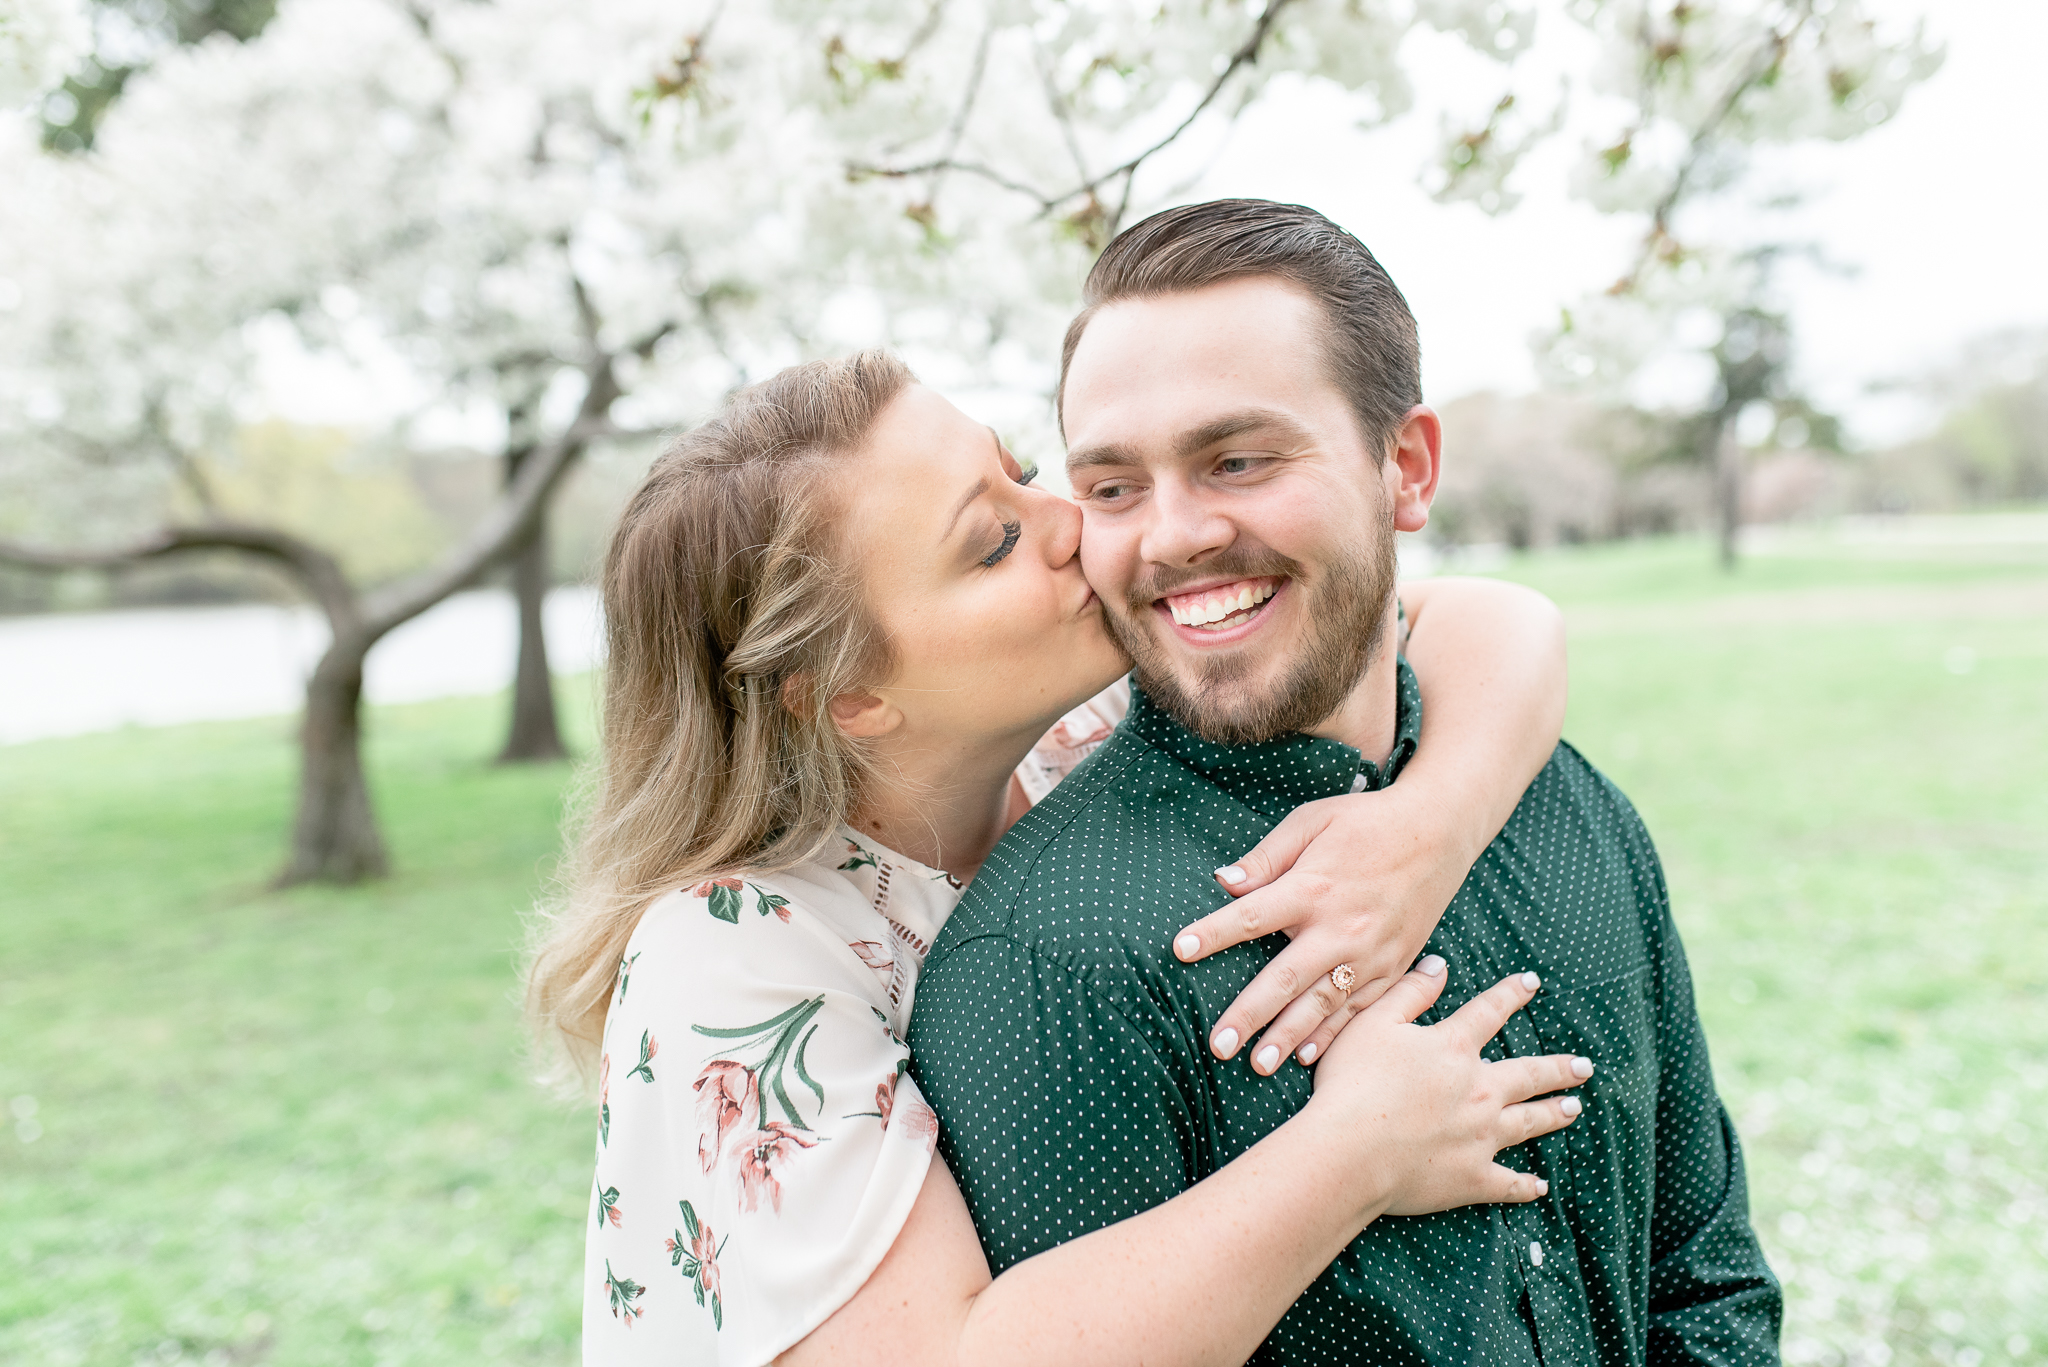 04_14_2019_Dana_Slifer_Photography_Alyssa_and_Brett_Engagement_Session_33.jpg